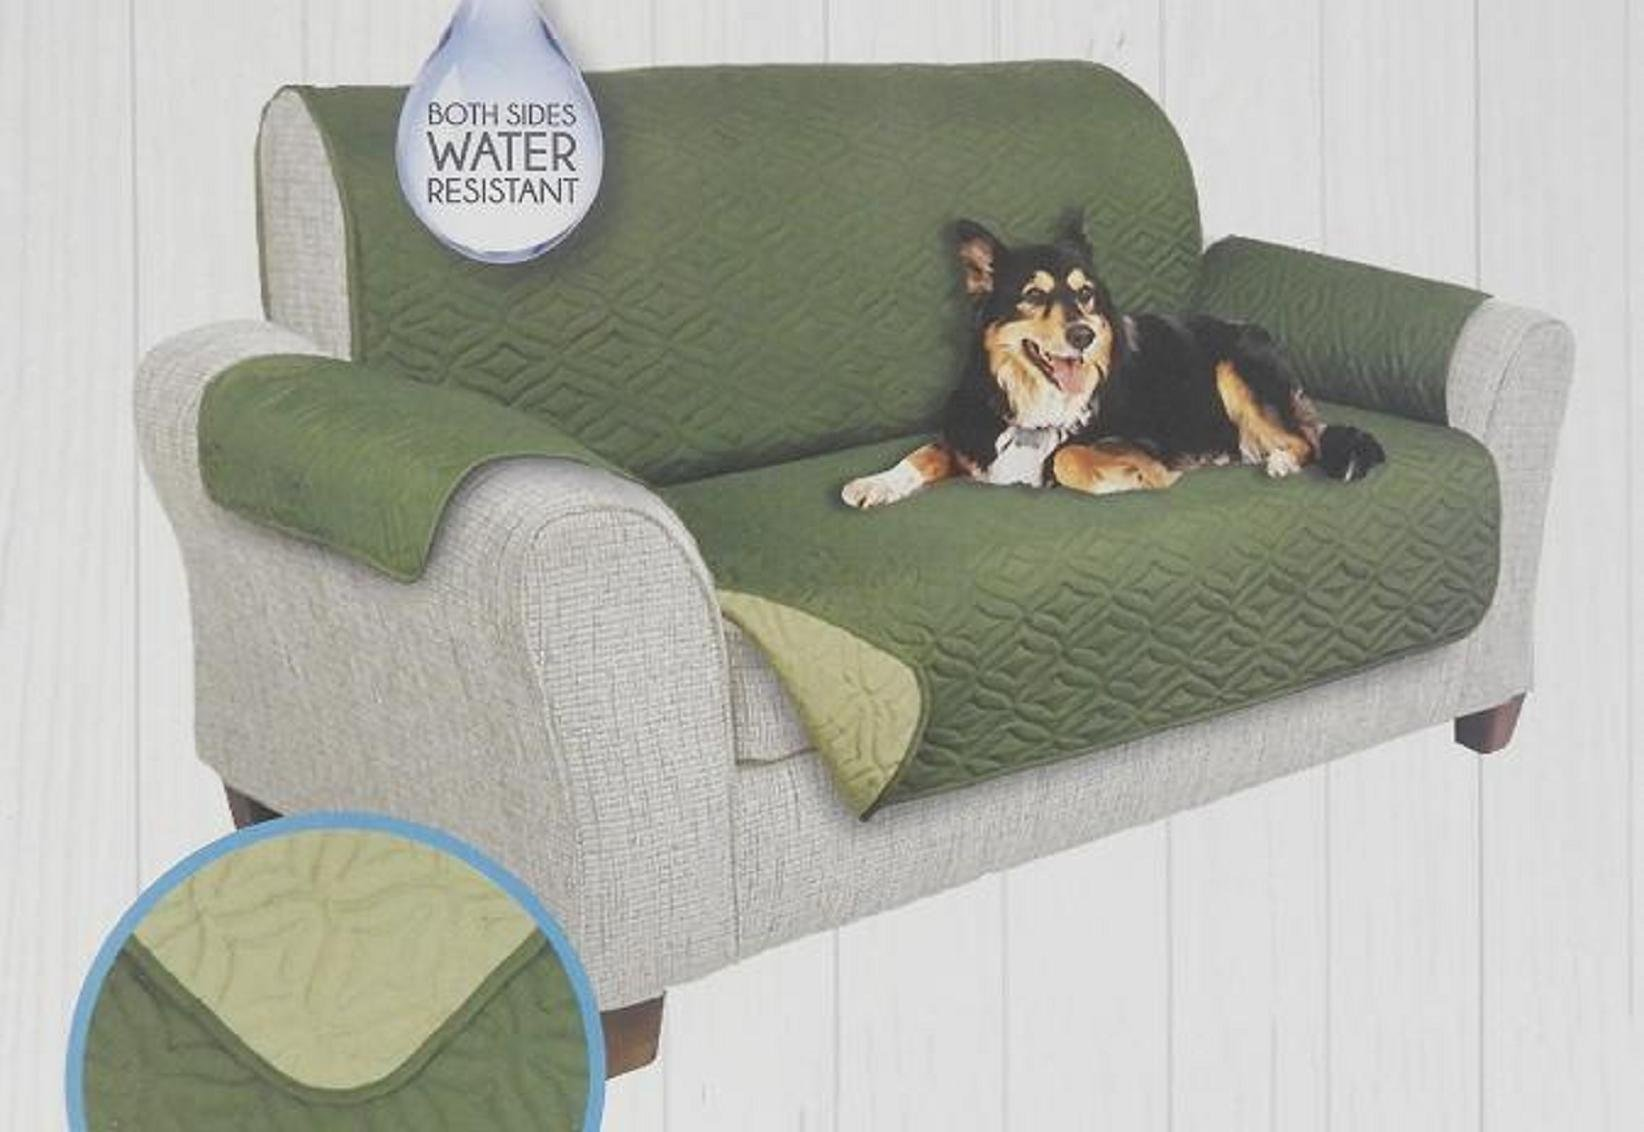 DINY Home & Style Reversible Quilted Furniture Protector For Loveseat 75'' x 88'' Two Fresh Looks in One Water Resistant (Olive/Sage)